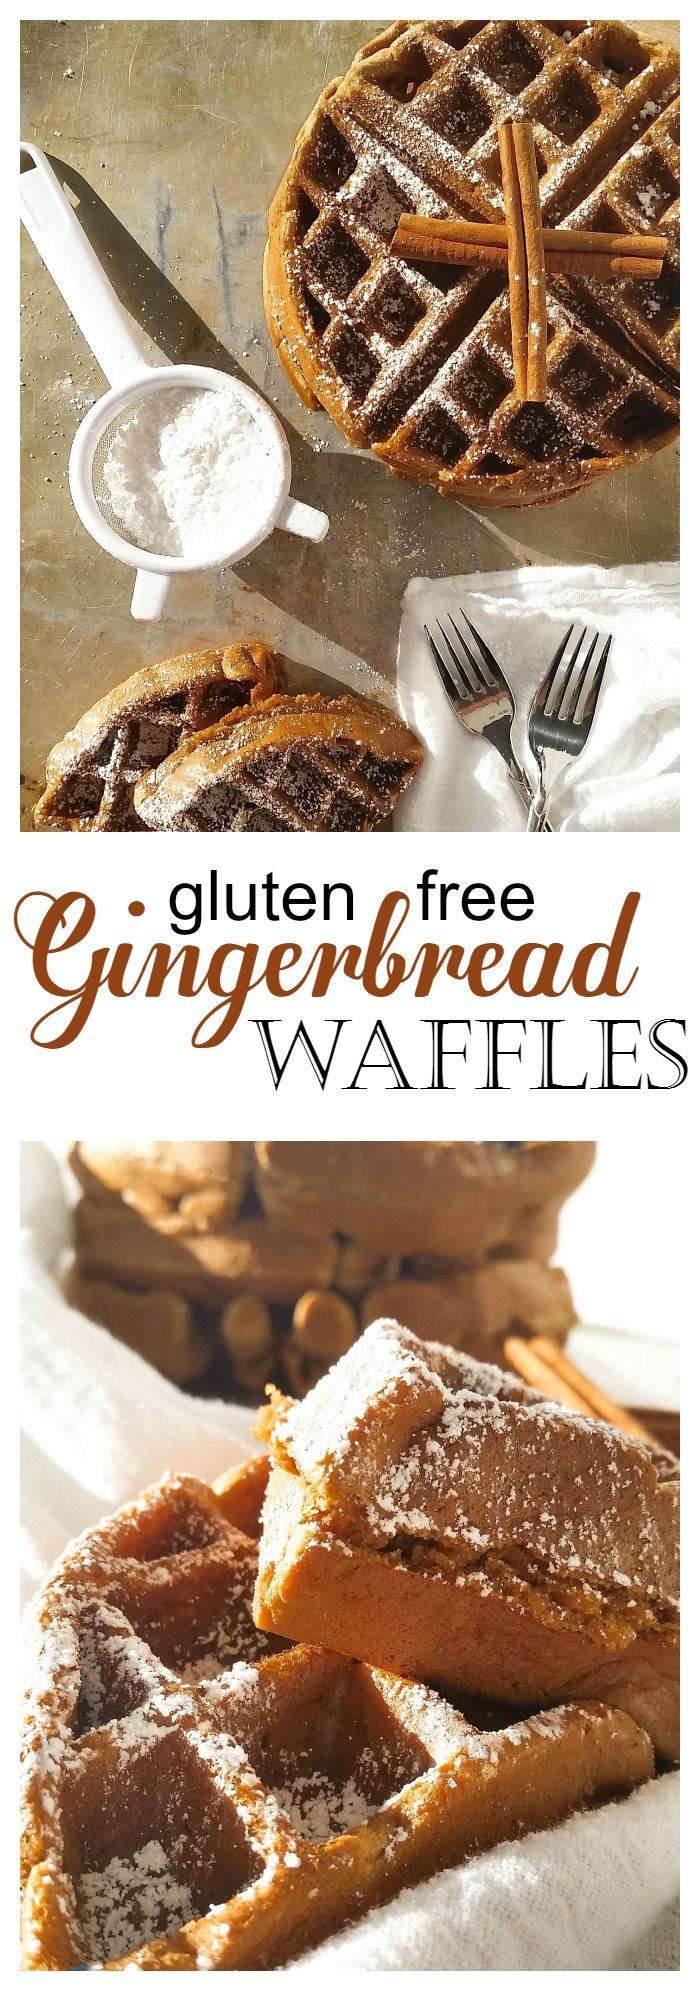 Gluten Free Gingerbread Waffles-Gingerbread cookies you can eat for breakfast!